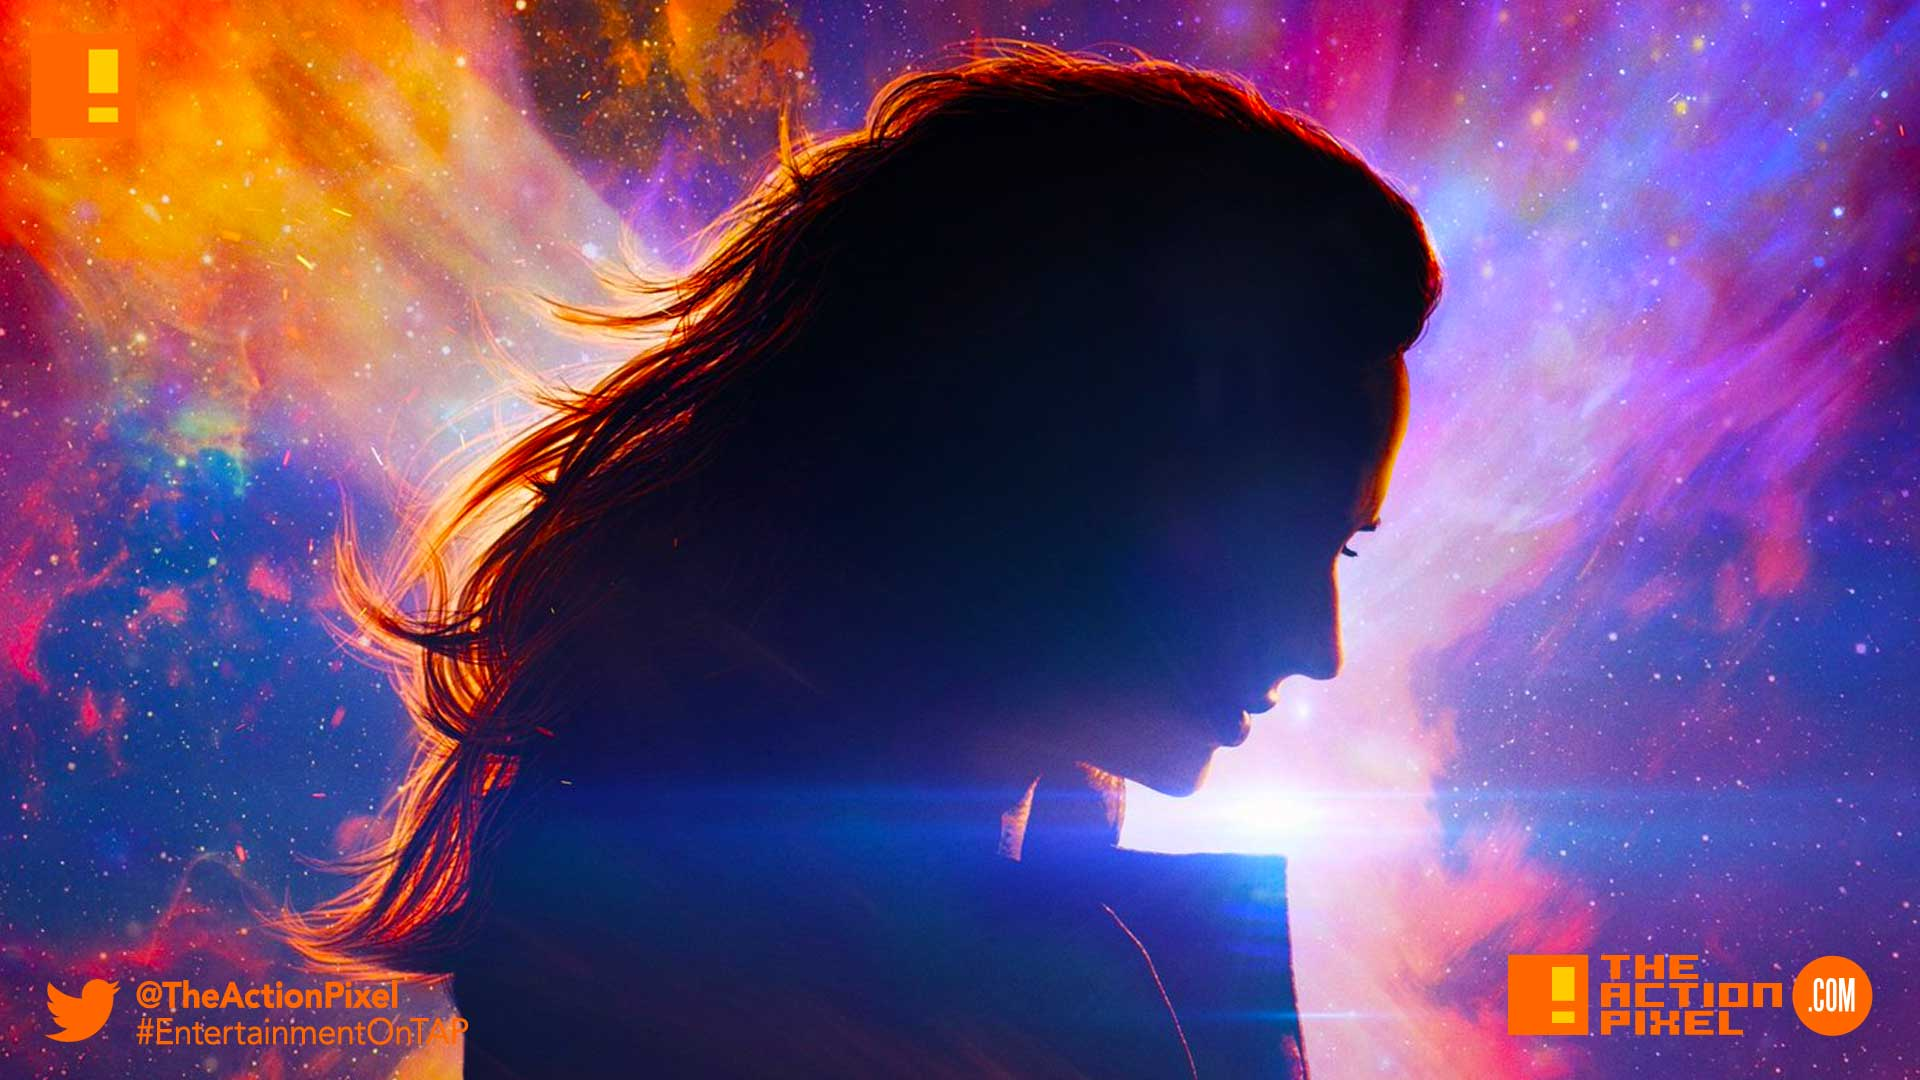 dark phoenix, x-men, wolverine, adamantium, claws ,teaser, the action pixel, entertainment on tap, teaser, trailer, trailer 3, marvel, 20th century fox, apocalypse, mystique, jean grey, nasa, the action pixel,entertainment on tap,